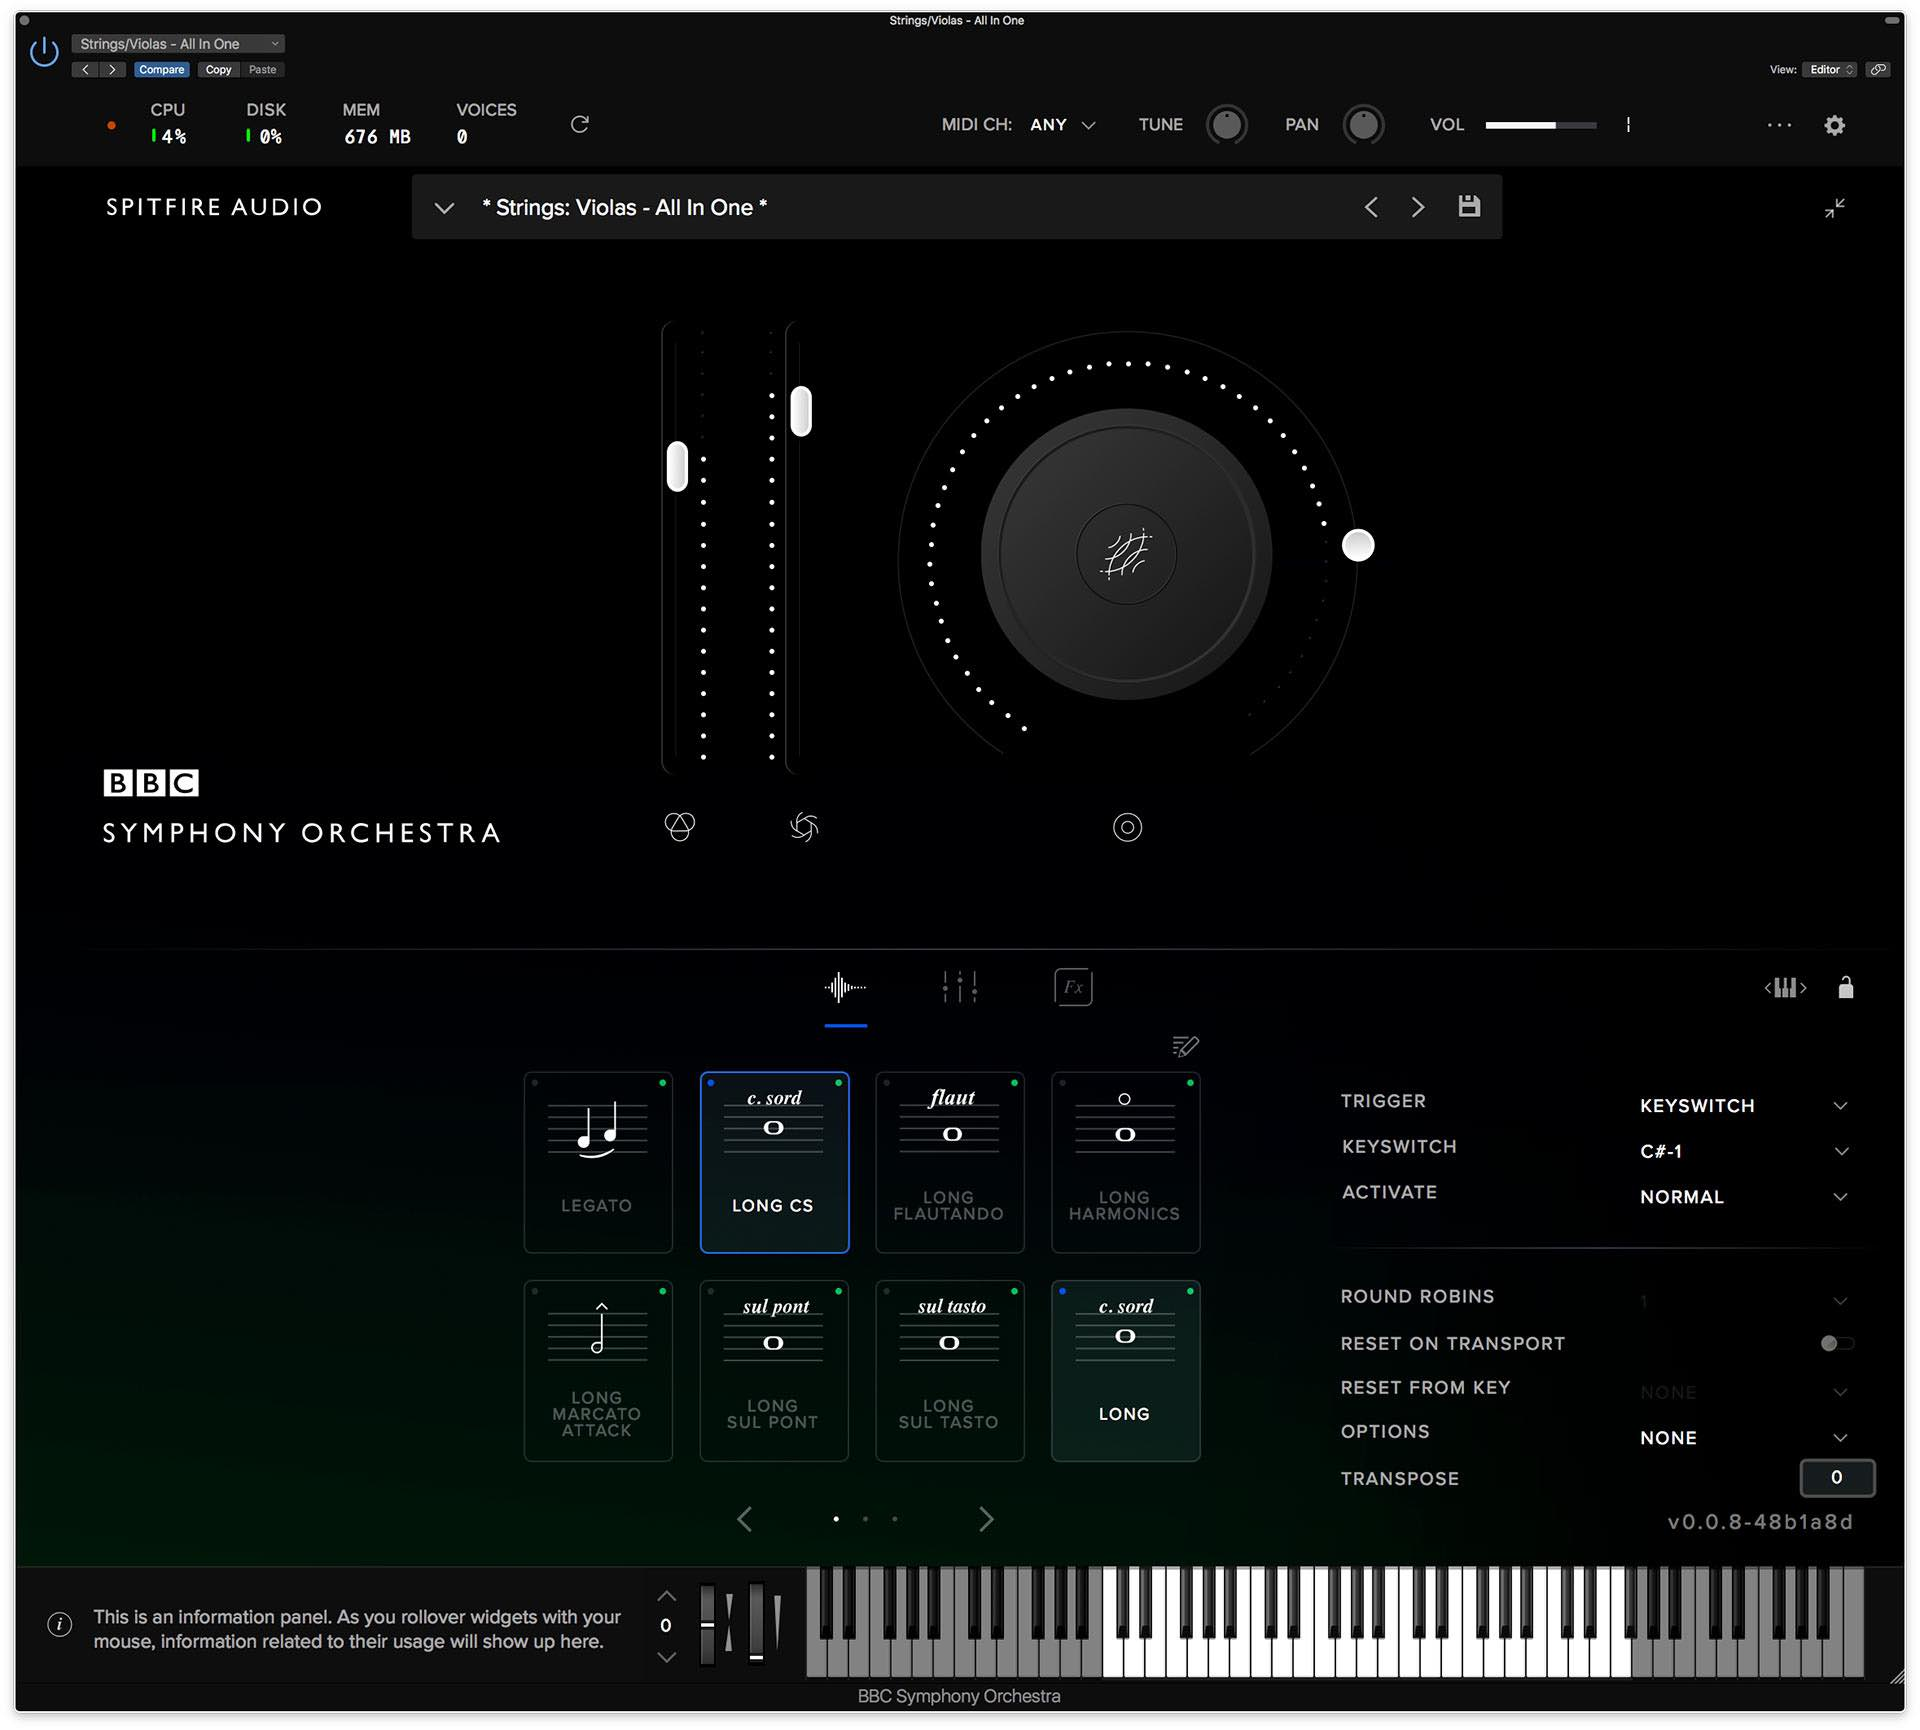 Spitfire BBC Orchestra virtual instrument sample library score audiofader